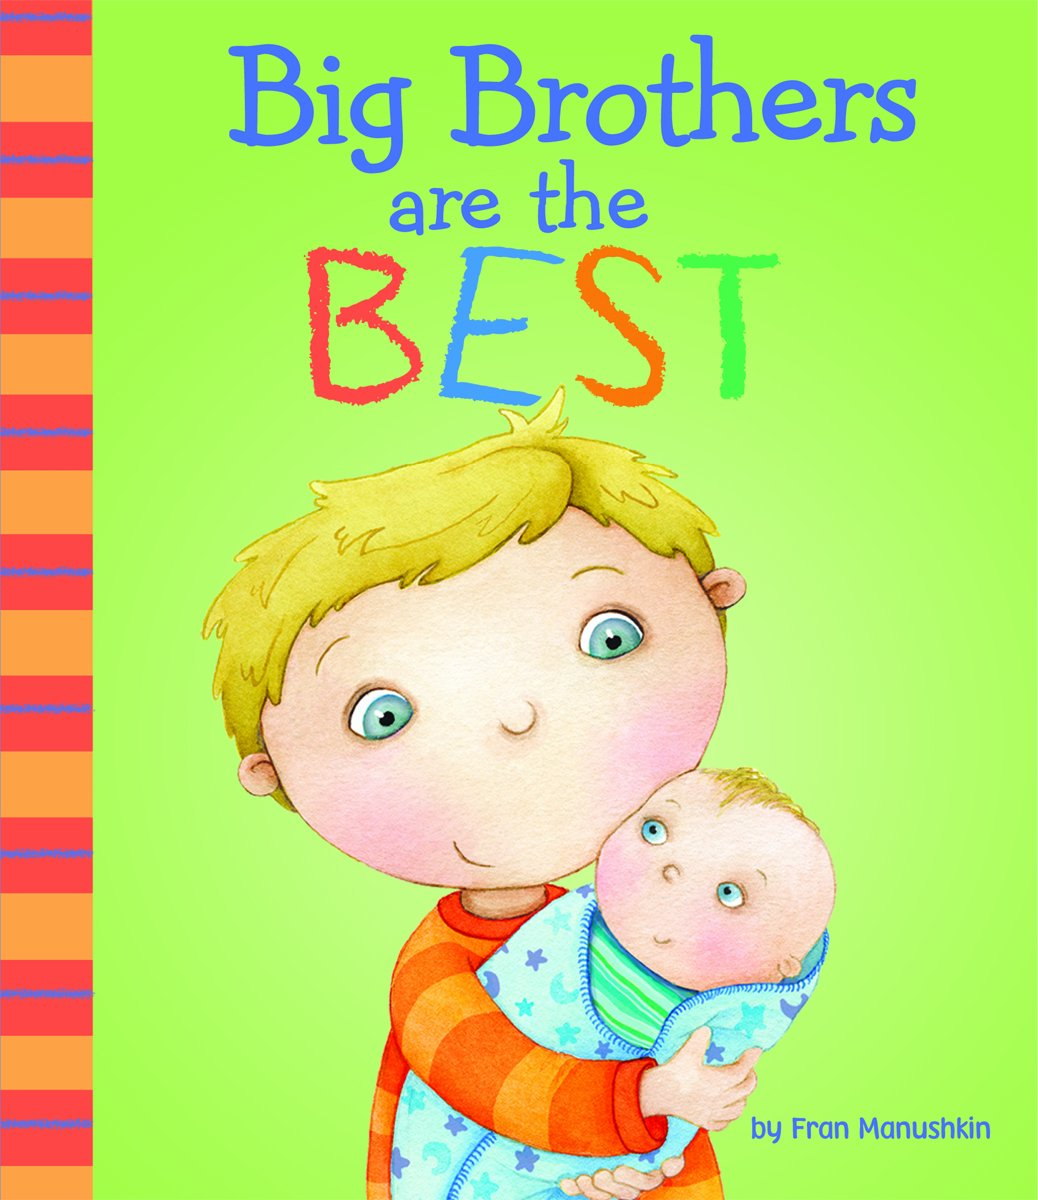 Brothers Best Fiction Picture Books product image